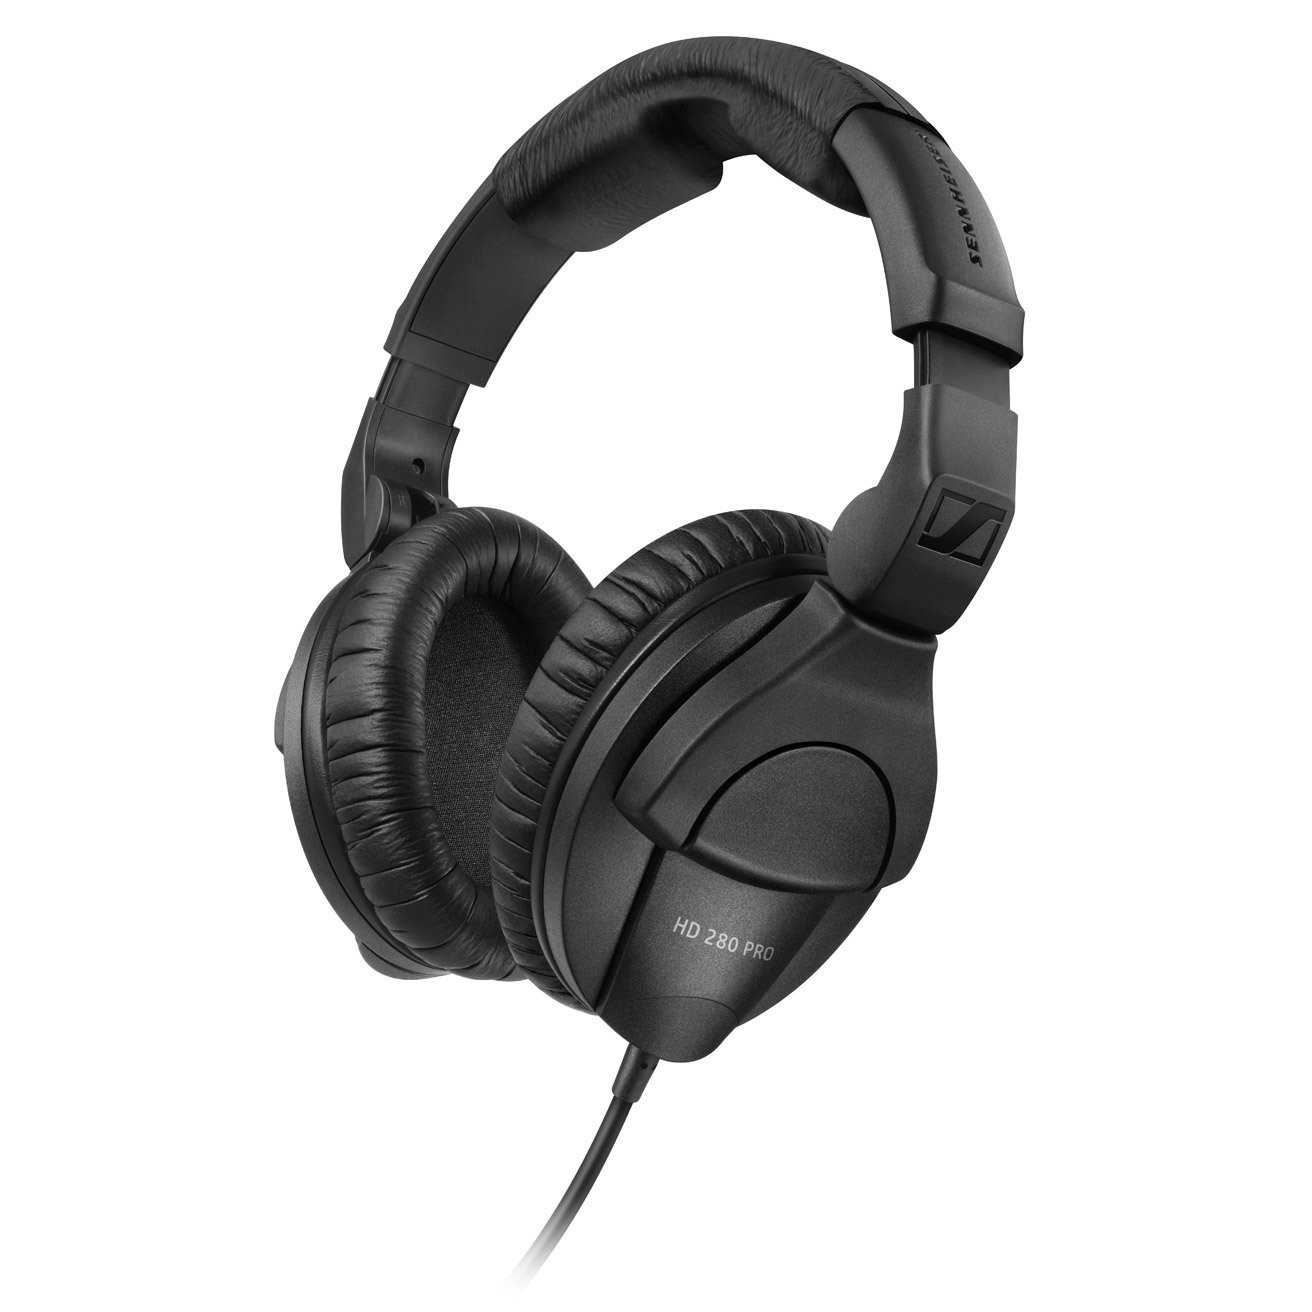 sennheiser HD 280 pro noise cancelling headphones